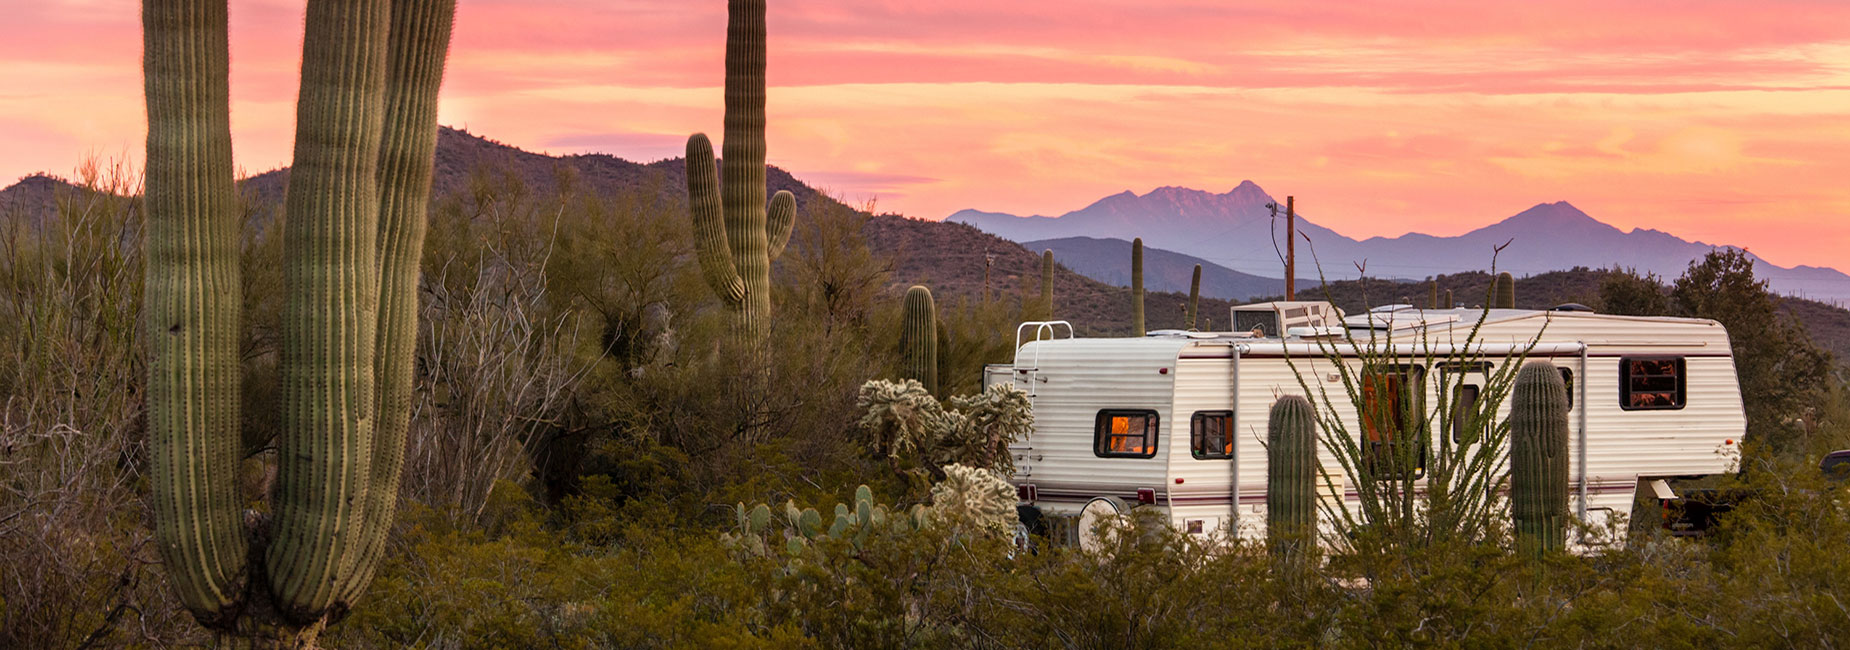 Let Keystone RV Services ensure that your plumbing system is working properly in order to avoid any surprises when you're in the middle of nowhere!